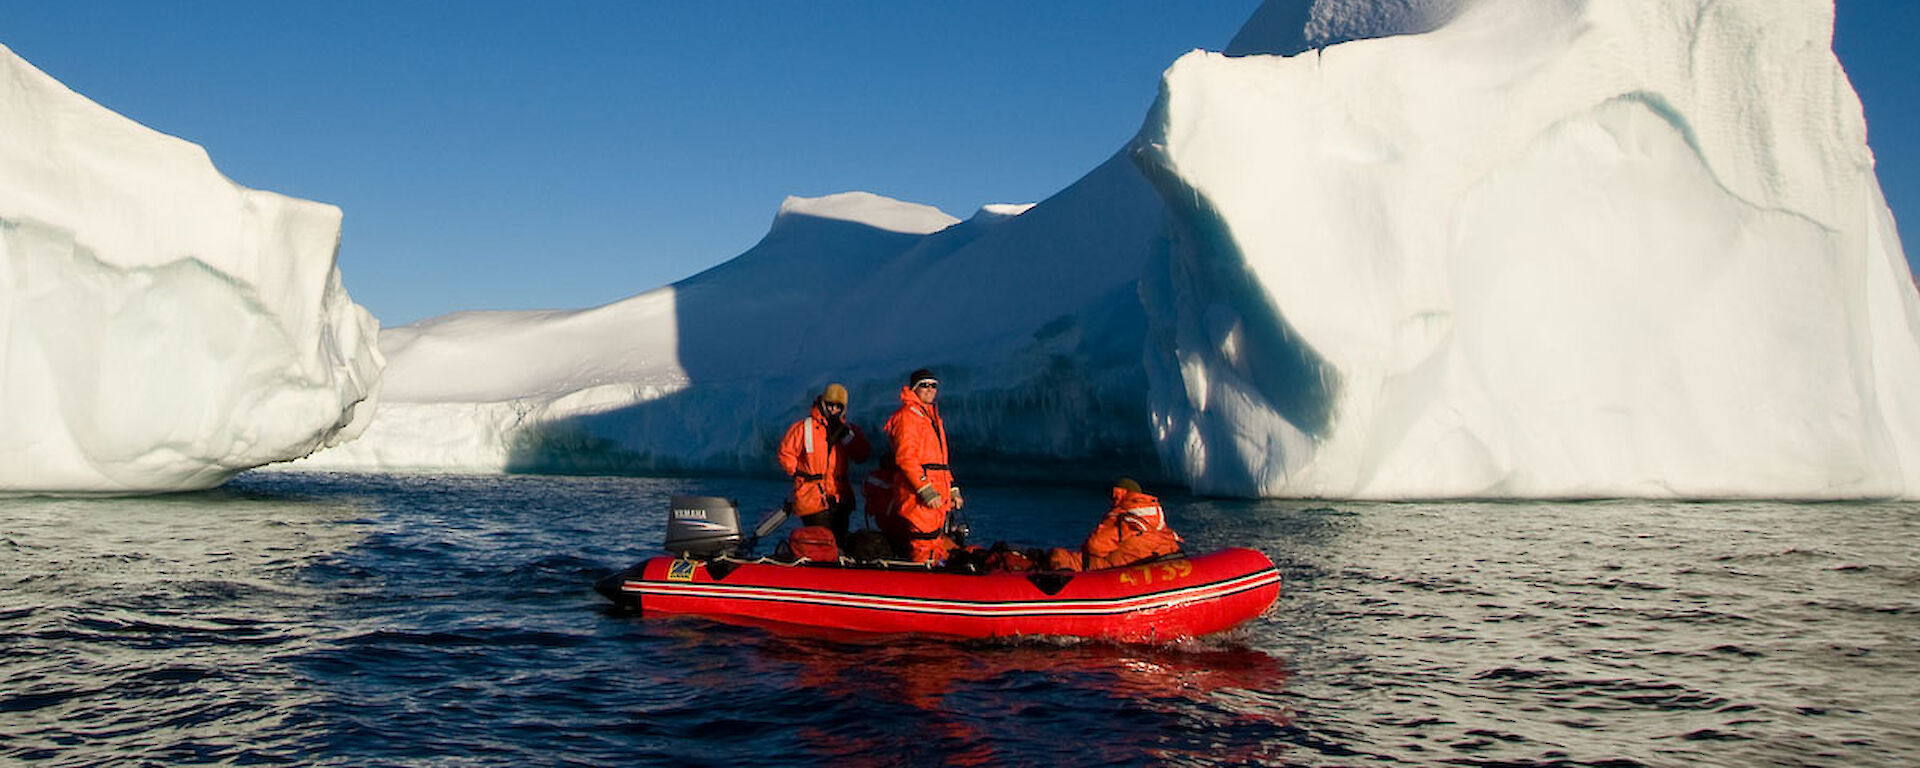 Two people in a red inflatable boat are dwarfed by a huge red iceberg.